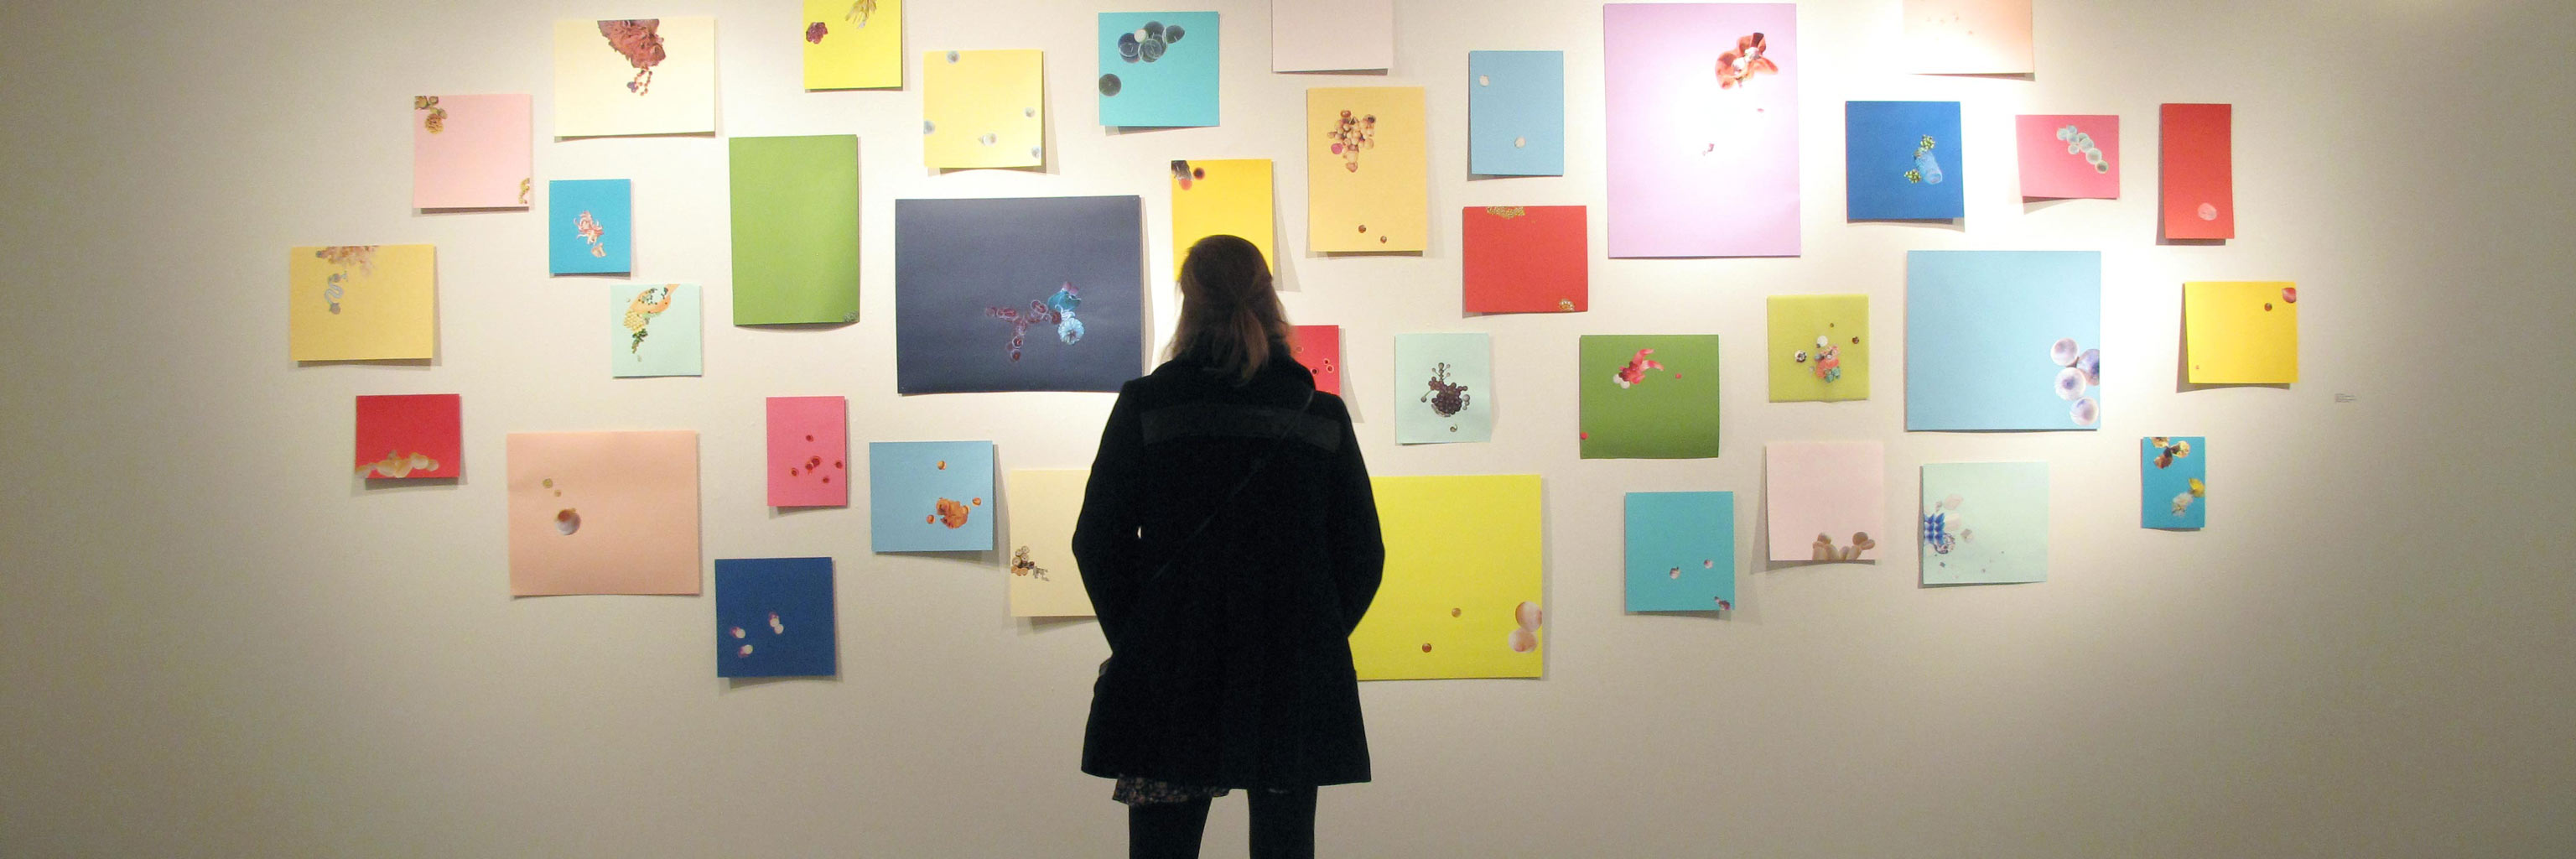 woman looking at pictures posted to a wall